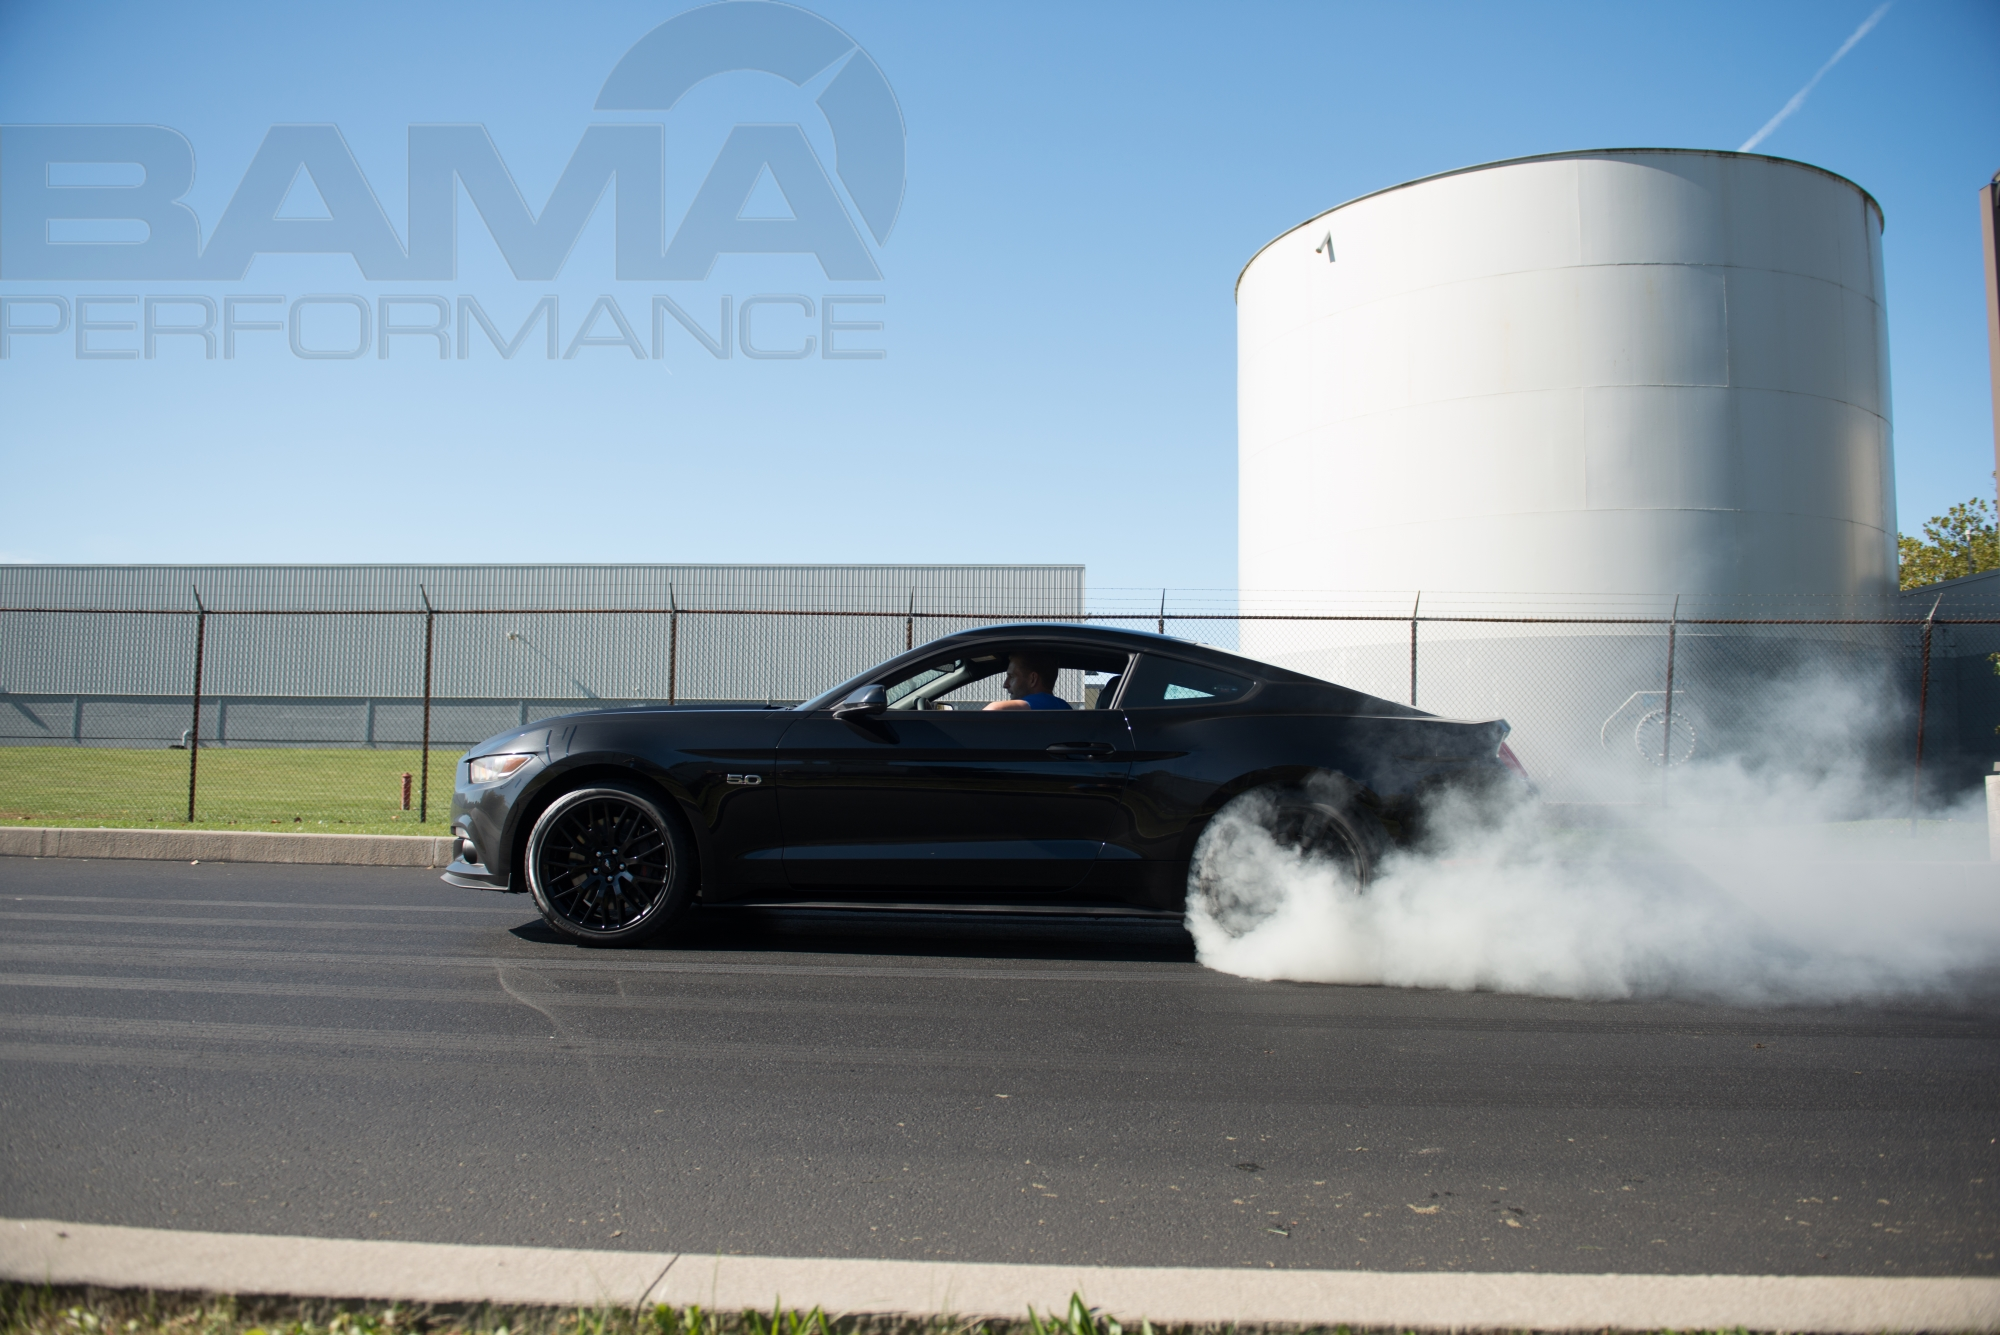 How To Do a Burnout in a Mustang – AmericanMuscle Blog